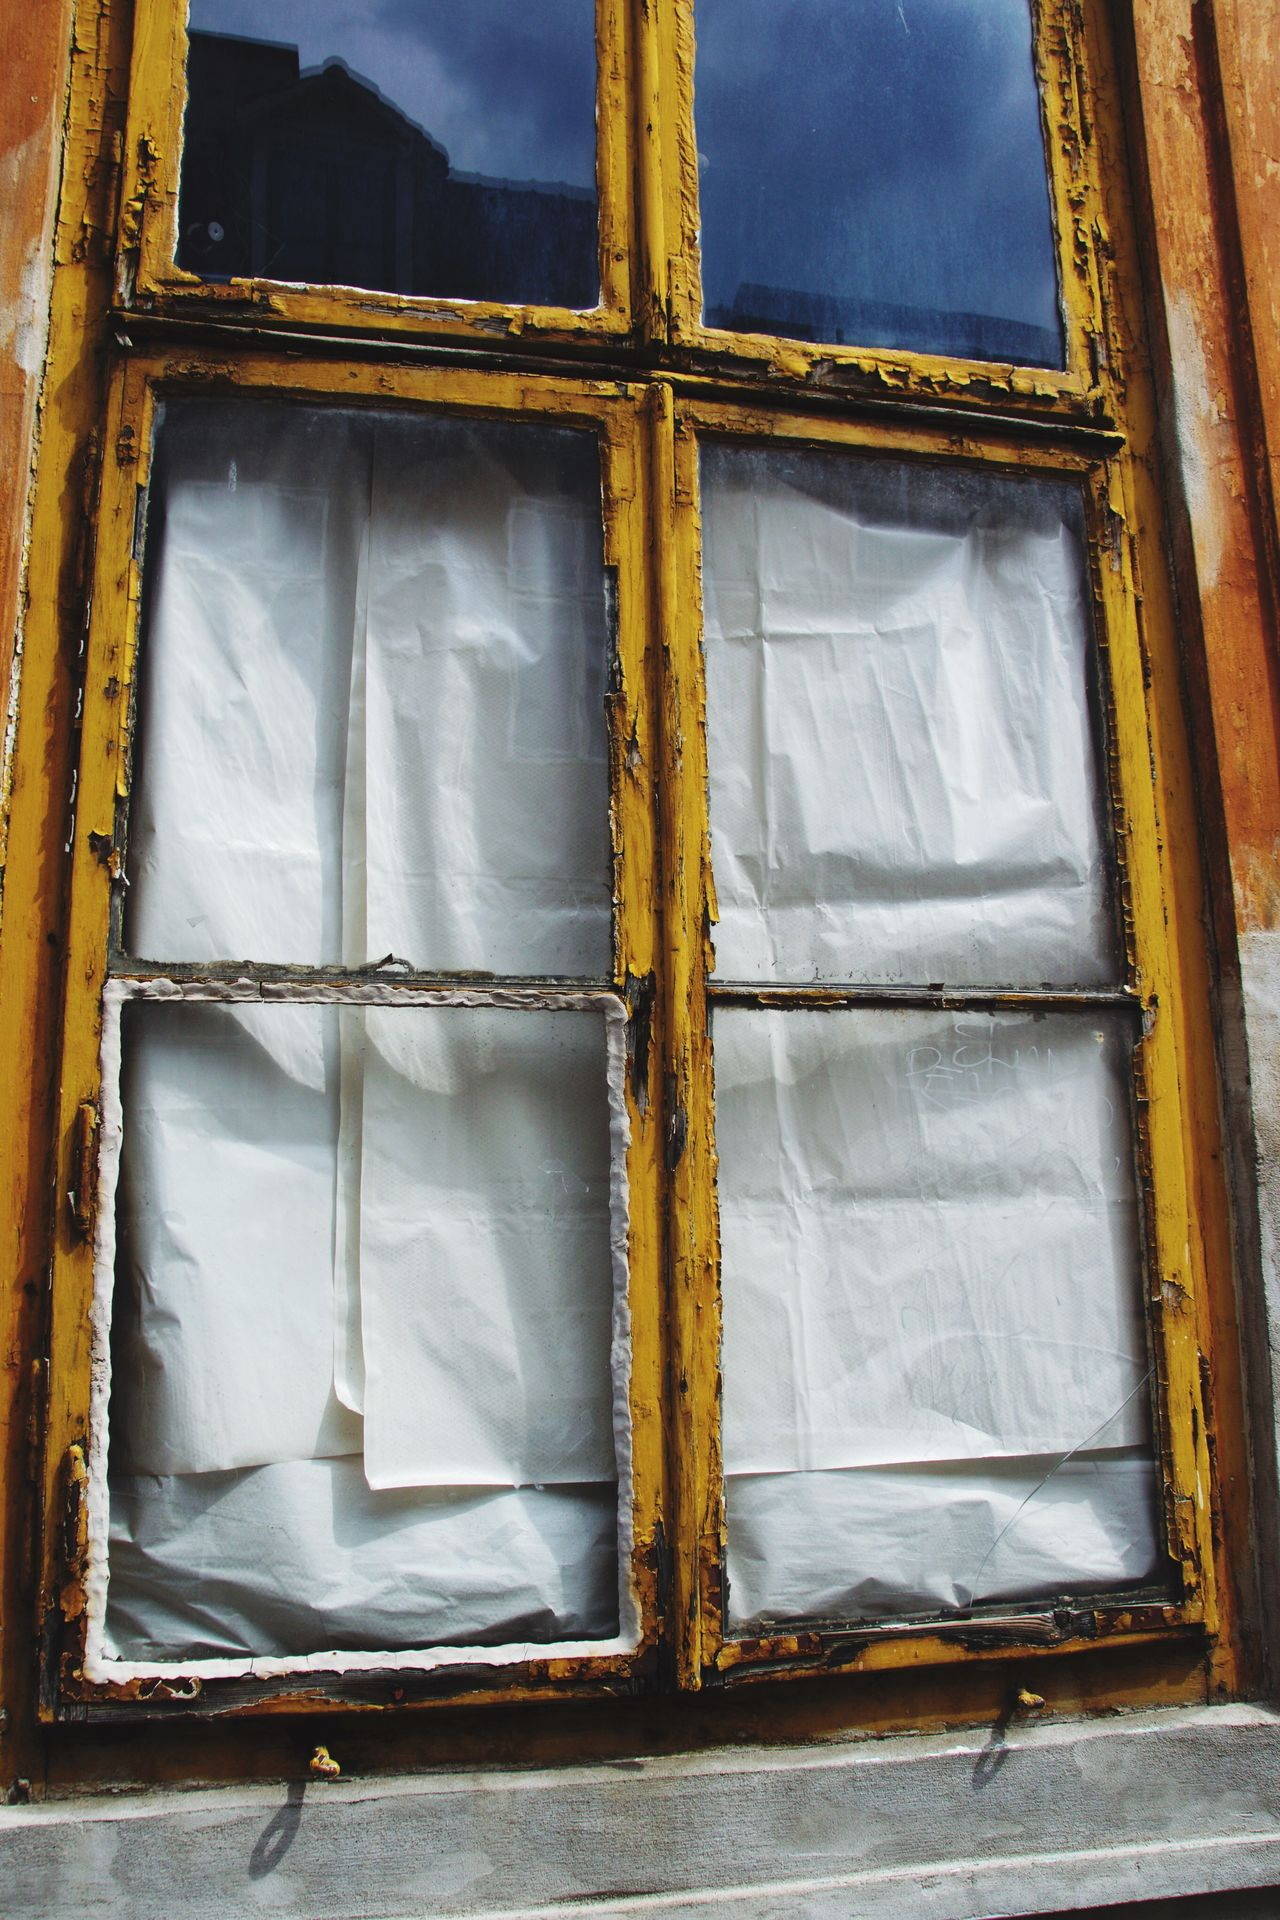 Window Architecture Rectangle Bad Condition Built Structure No People Close-up Building Exterior Day Outdoors Reflection Reflections Blind Windows Urban Exploration Urbanphotography